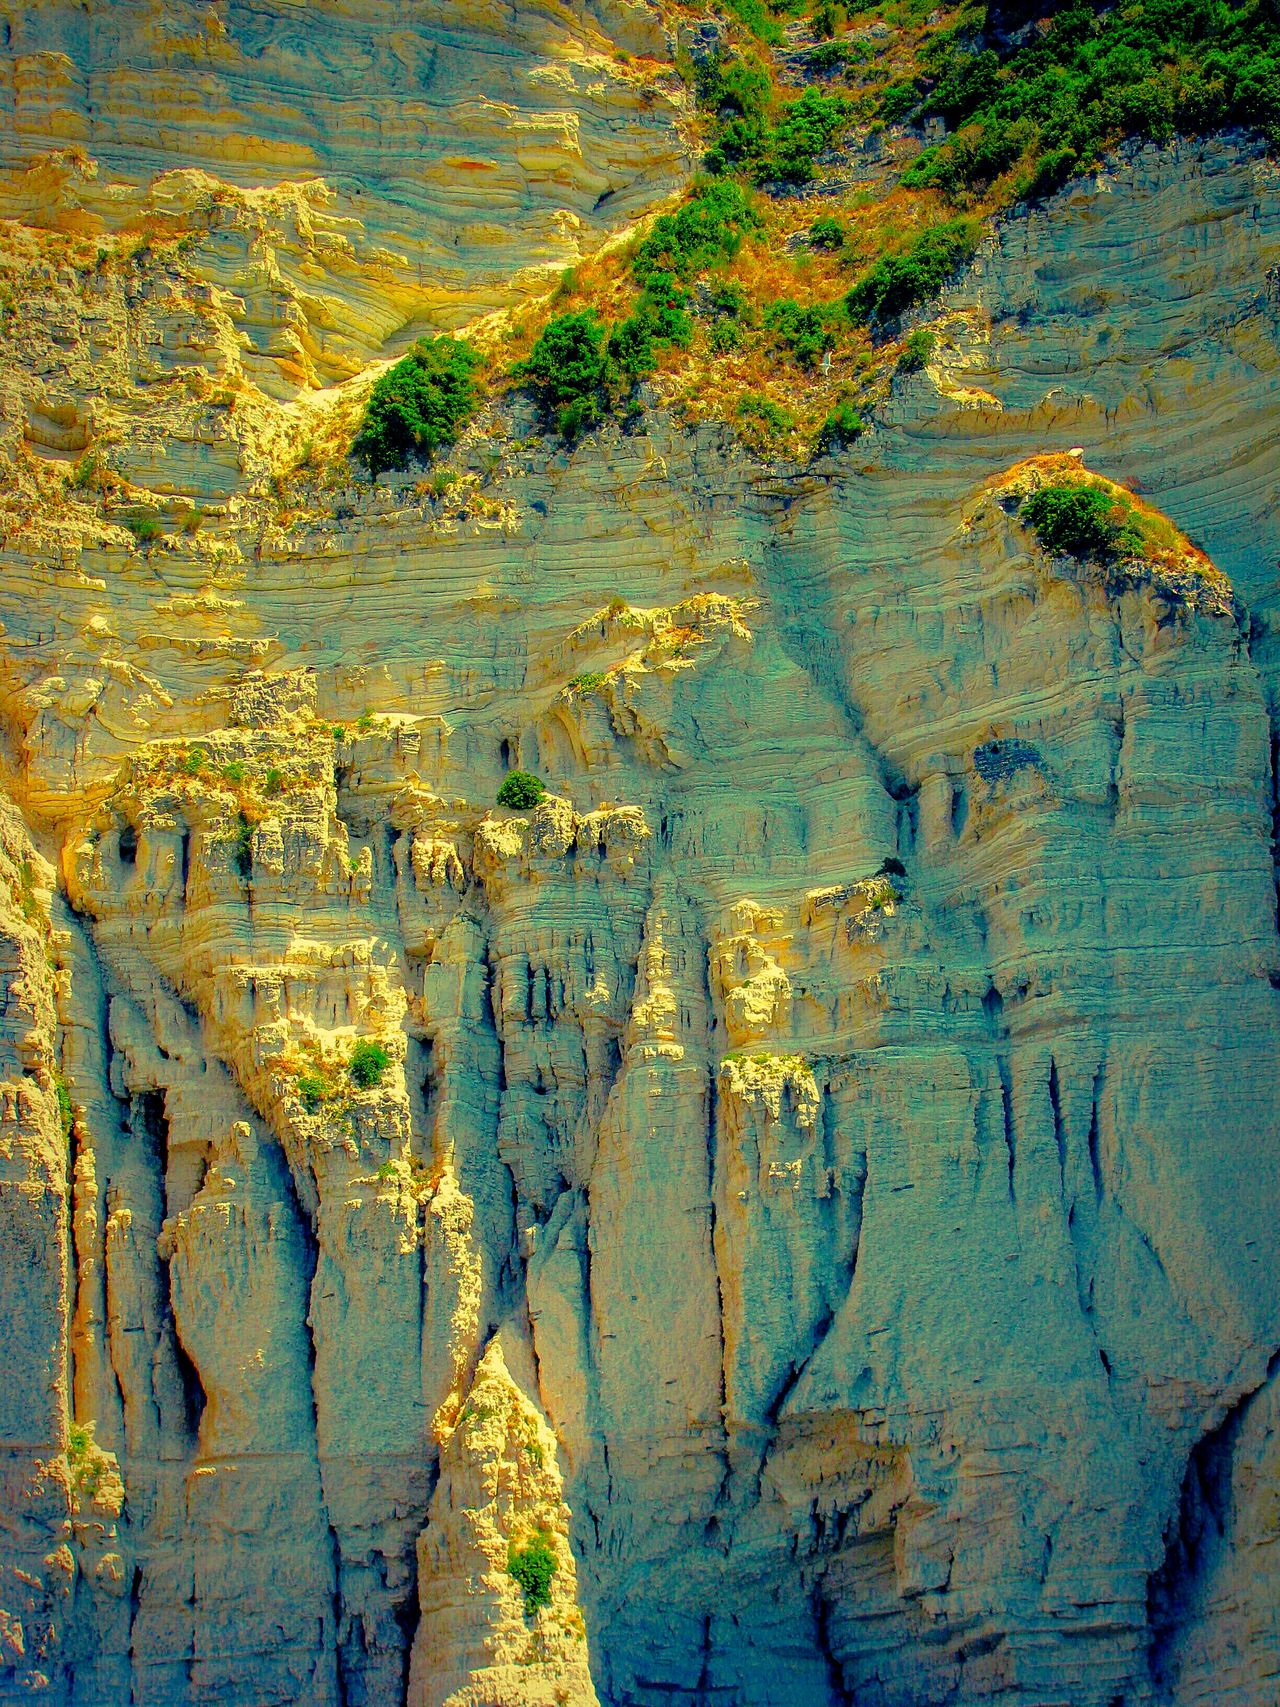 The KIOMI Collection Rock Rocks Rock Formation Wild Nature Greek Islands No People Shades Of Yellow Light And Shadow Showcase April Fine Art Wallpaper Cliff Cliffs Steep Cliff Nature